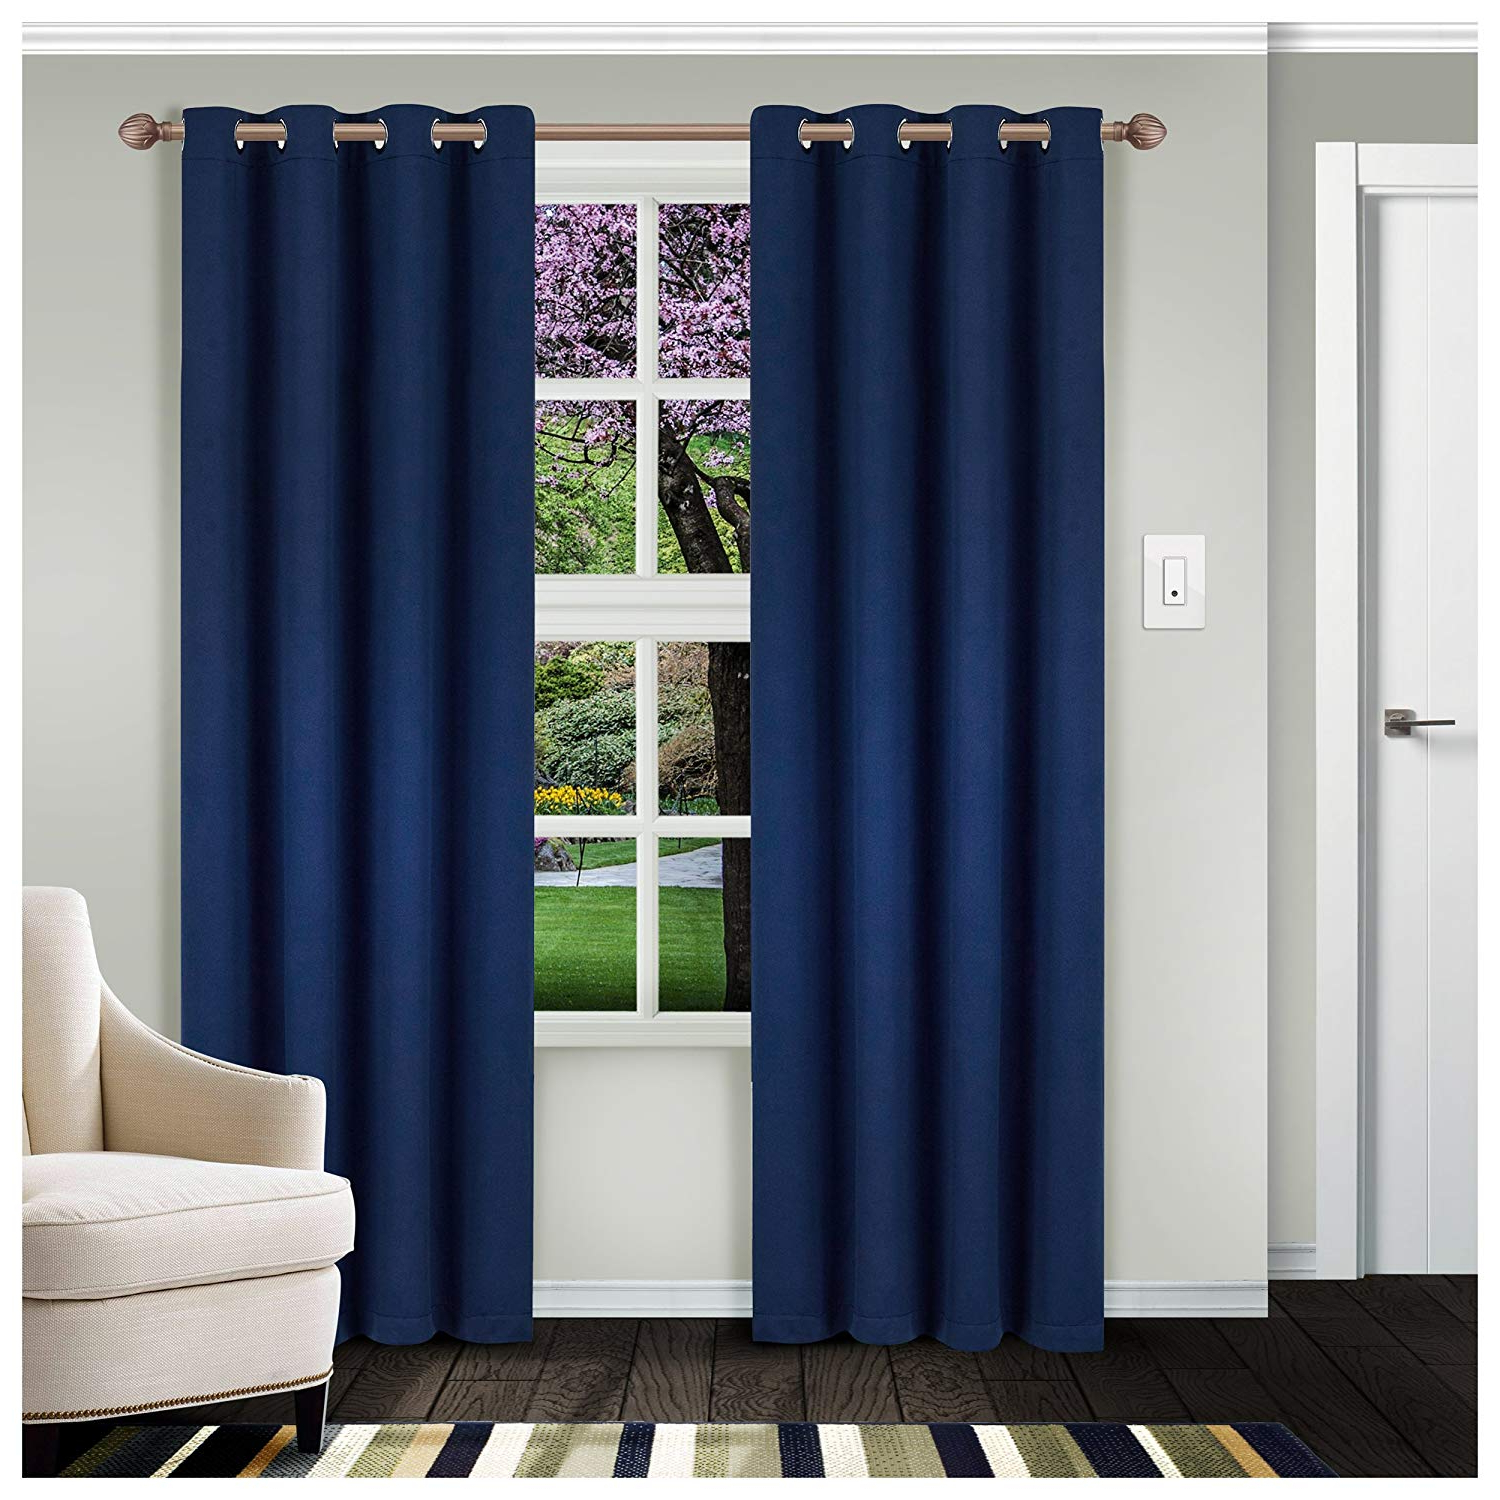 Solid Insulated Thermal Blackout Curtain Panel Pairs In Most Recently Released Superior Solid Blackout Curtain Set Of 2, Thermal Insulated Panel Pair With Grommet Top Header, Elegant Solid Room Darkening Drapes, Available In (View 9 of 20)